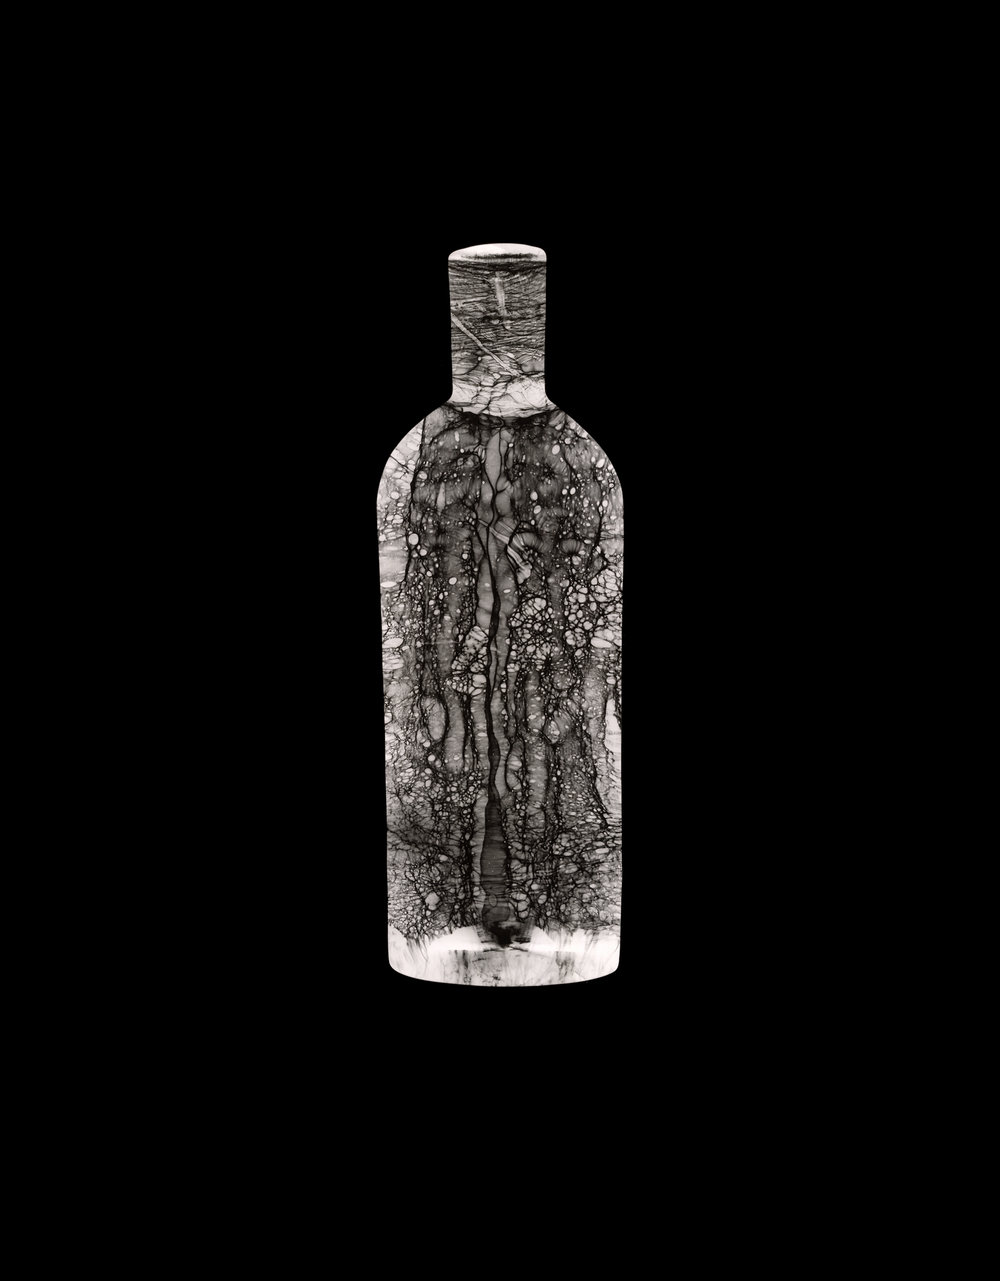 EMPTY BOTTLE No. 13